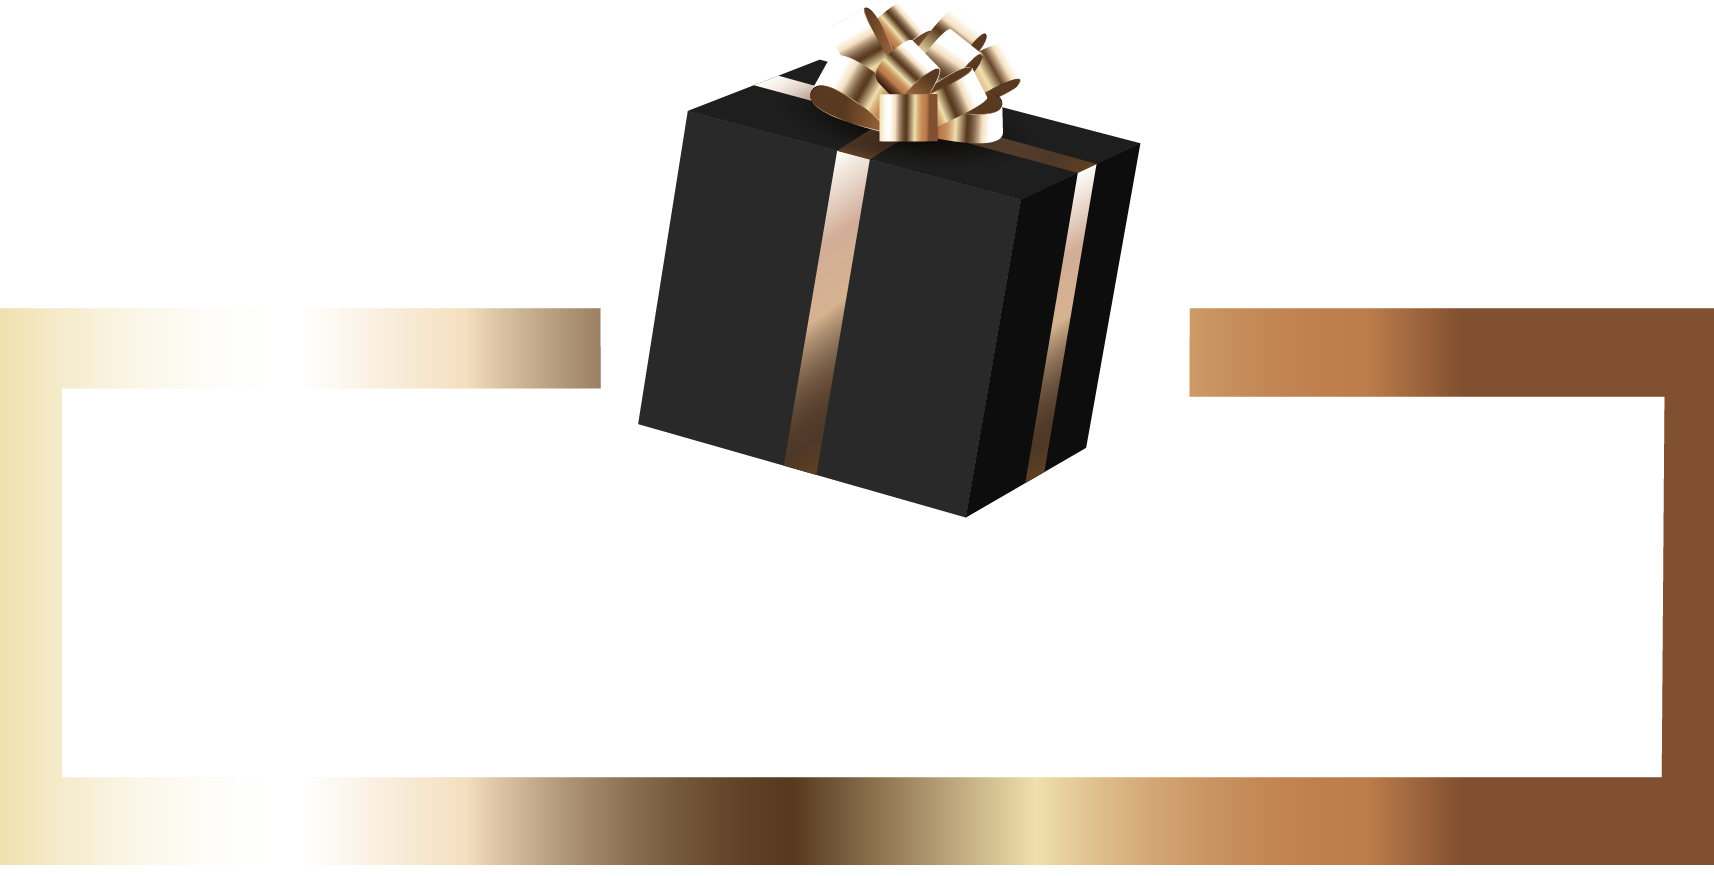 GERALD'S GIFTING